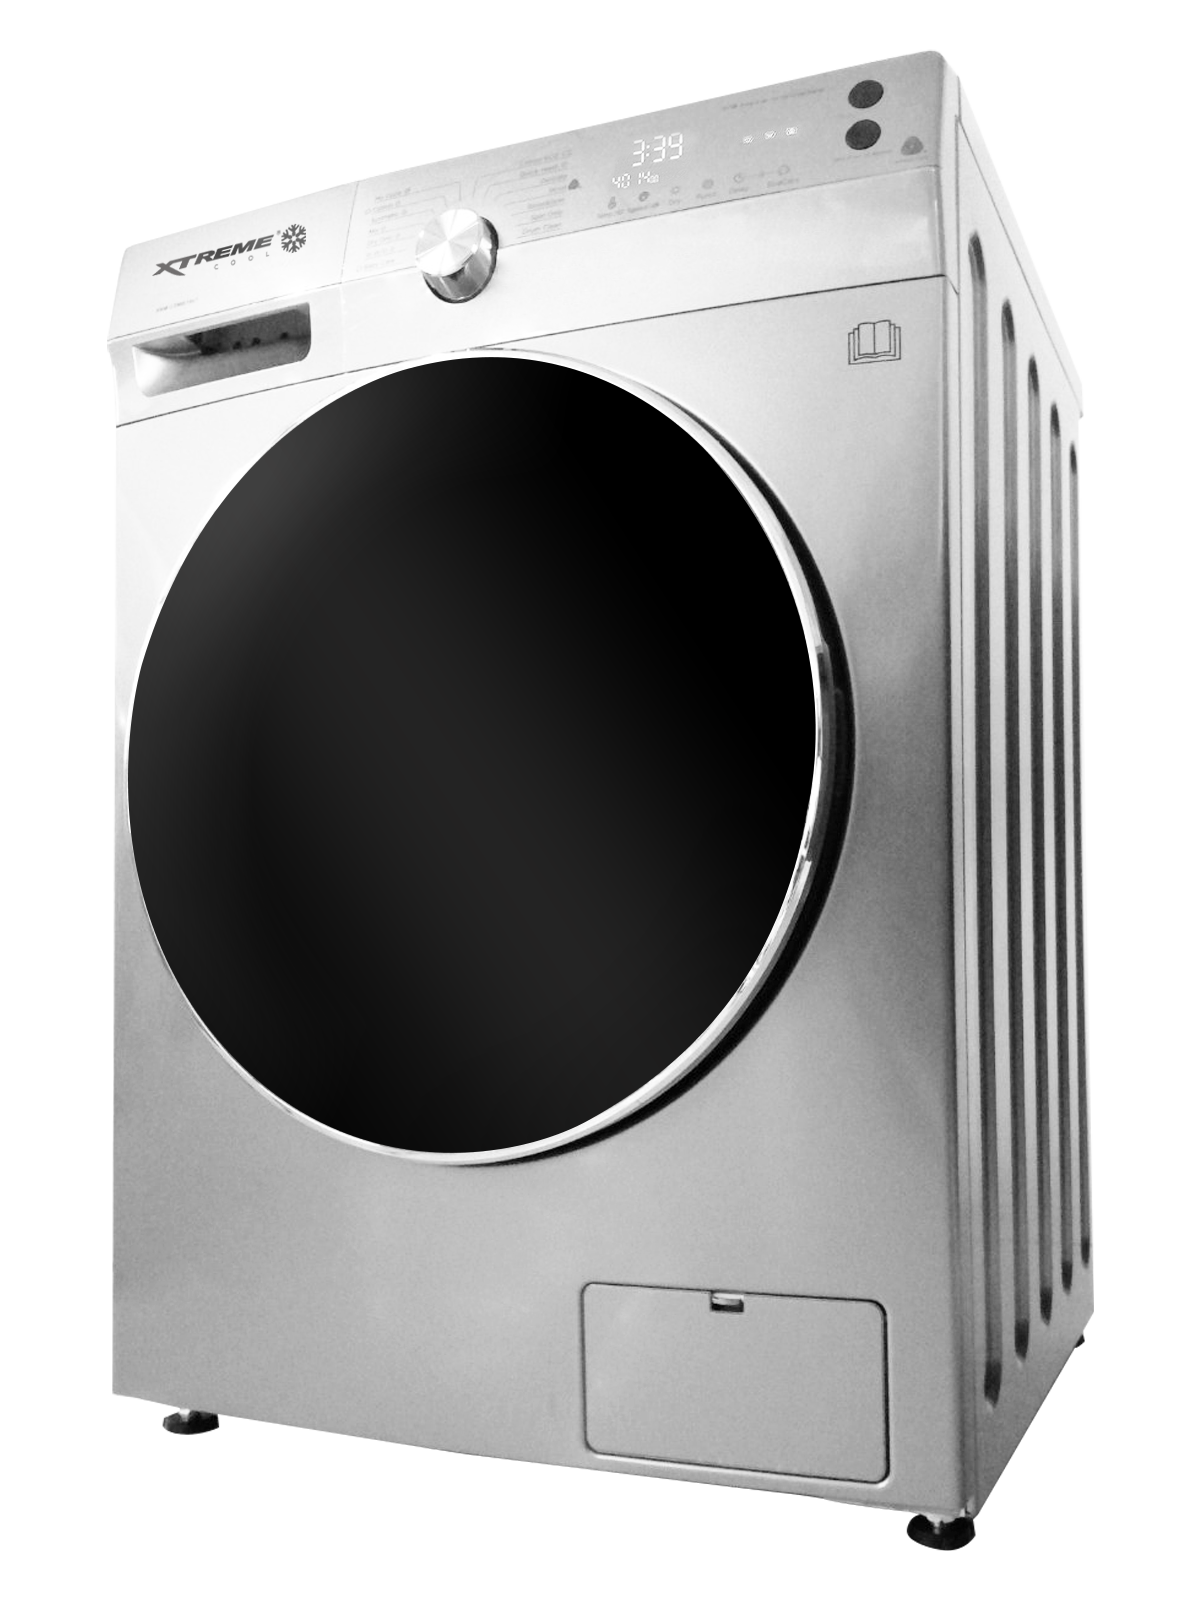 Steal up to 25% discount on XTREME Appliances this 10.10